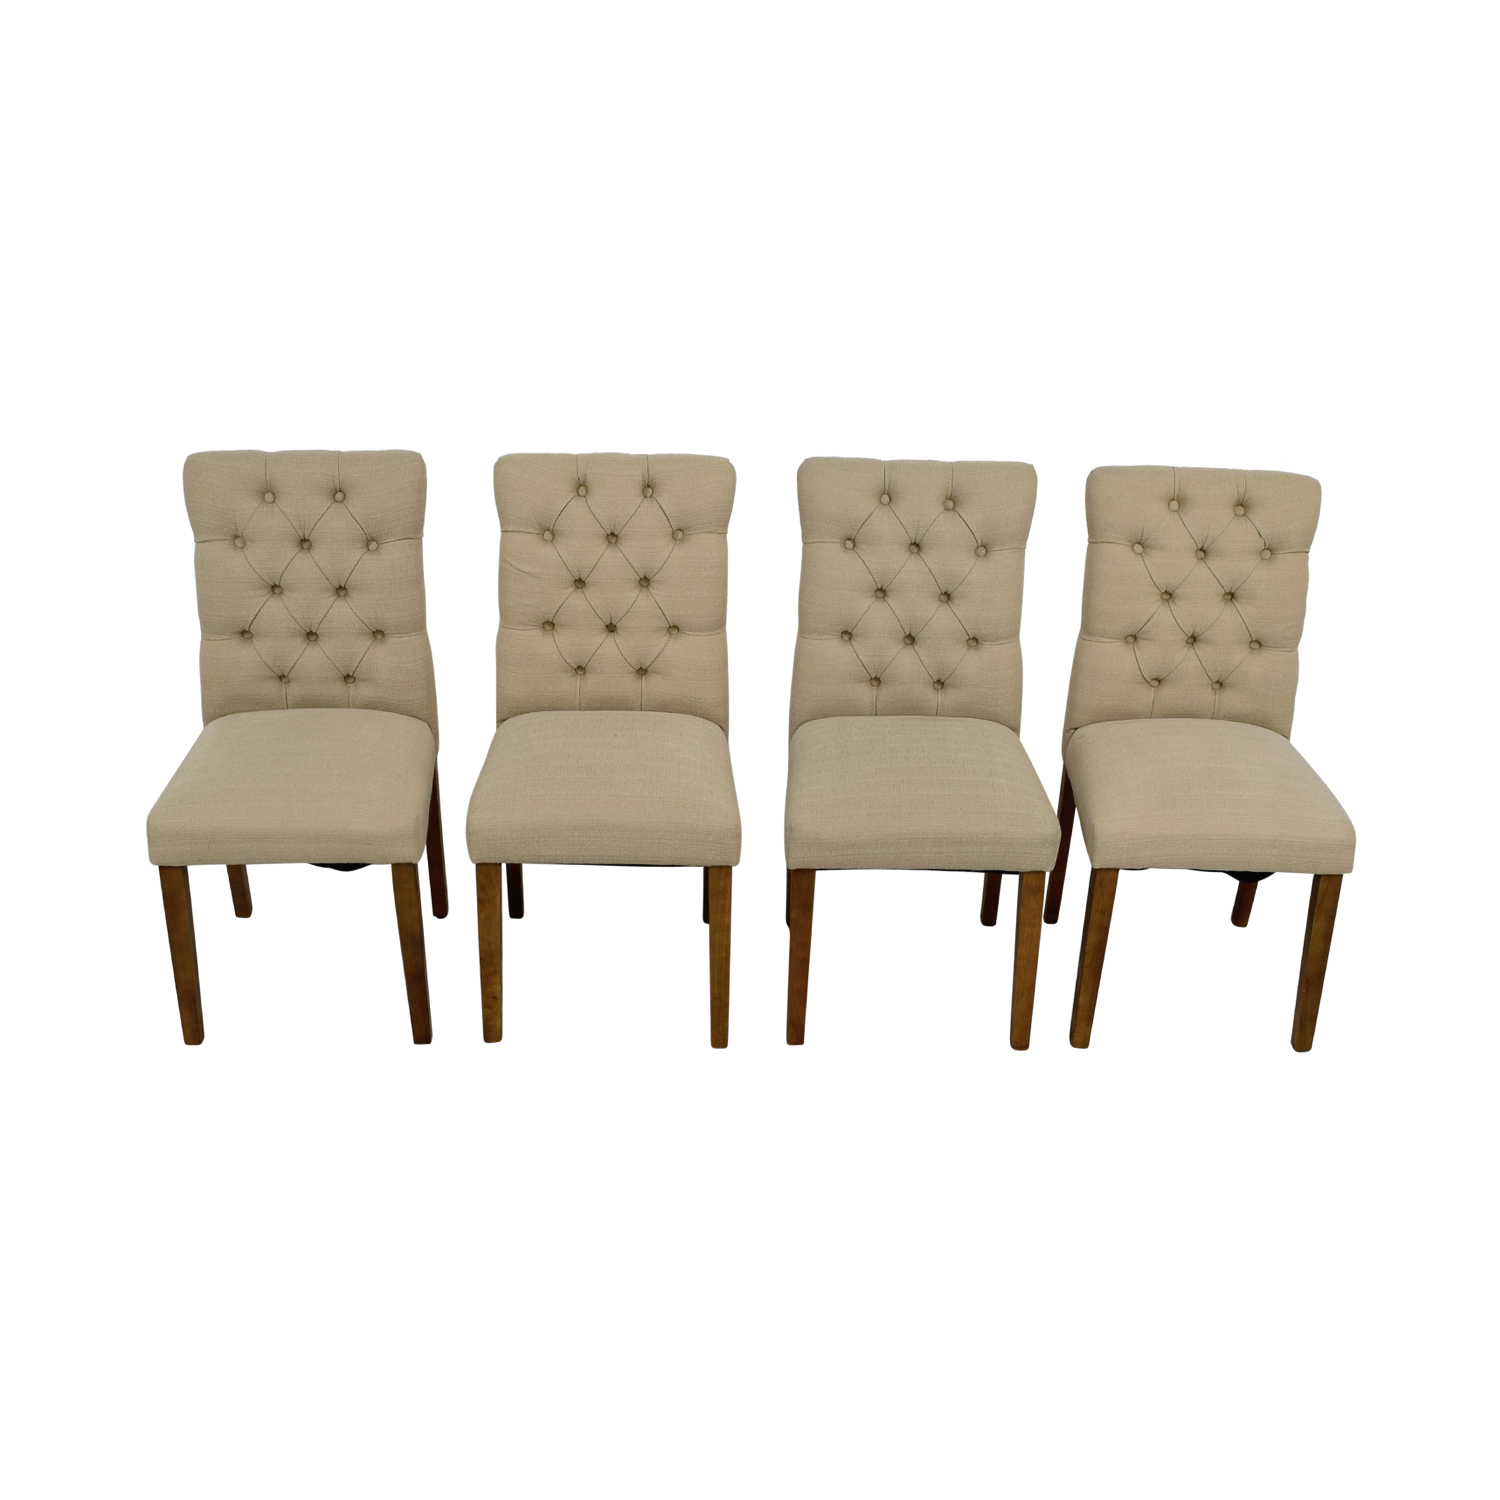 ... Target Brookline Threshold Tan Tufted Dining Chairs Sale ...